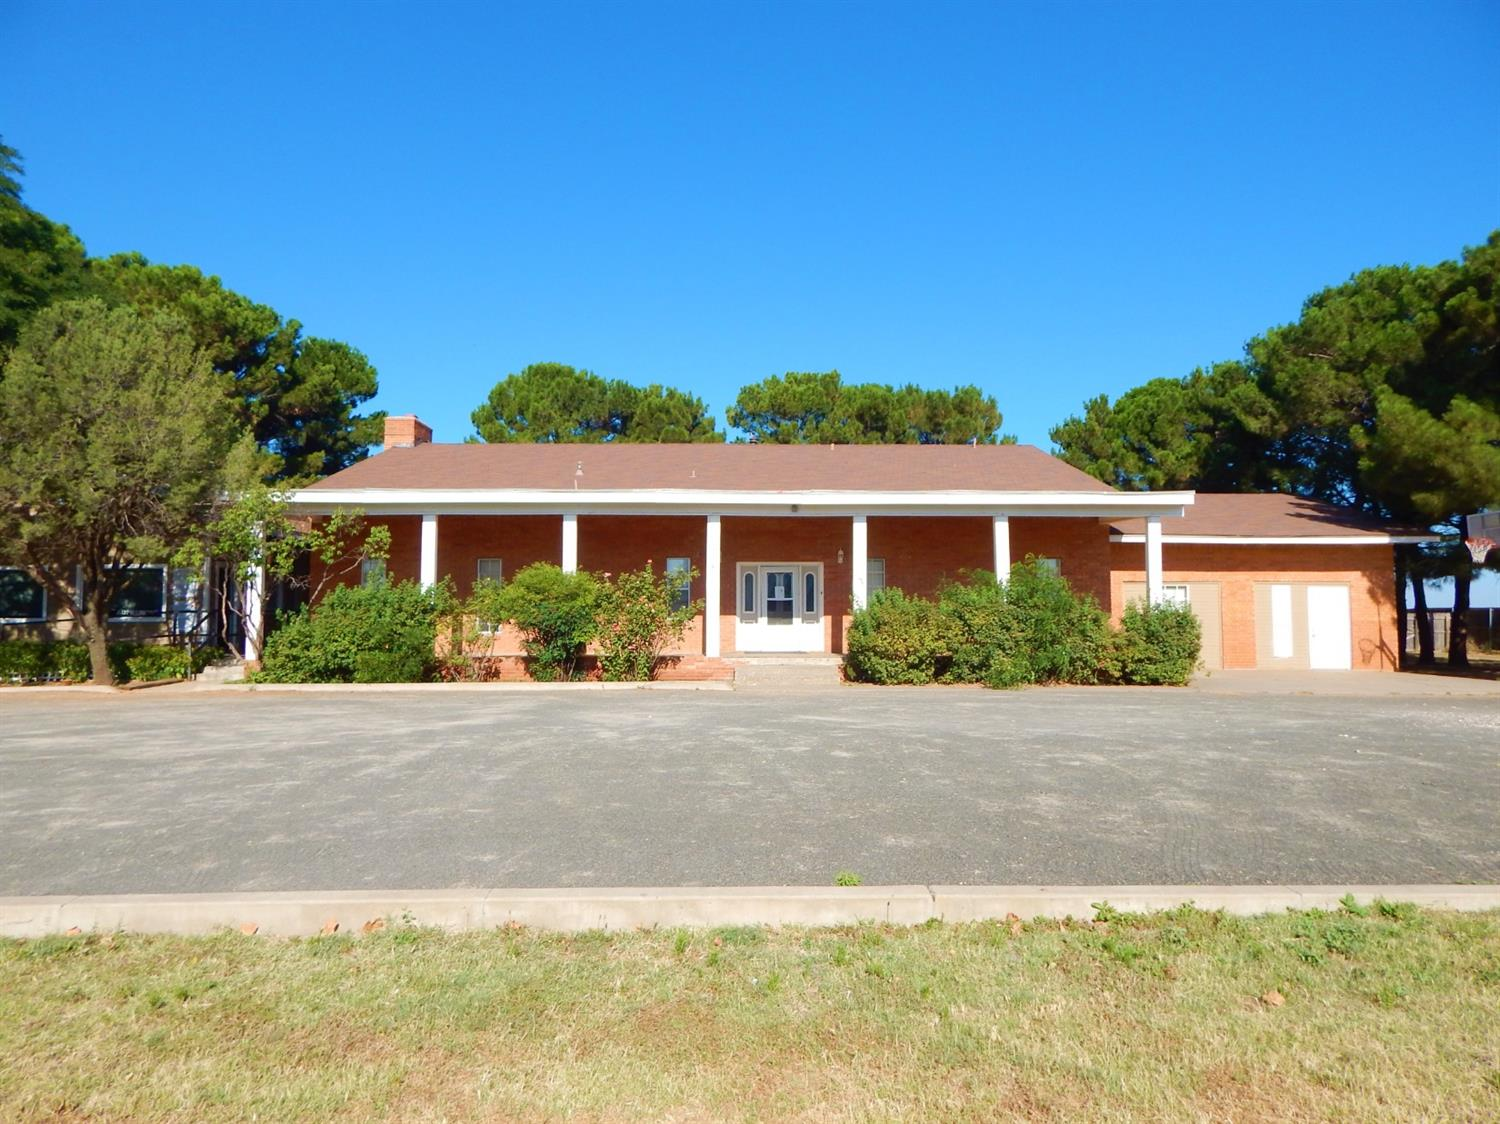 The Opportunities Are ENDLESS with this property. 5 Buildings with 5.9 Acres. Whether your need is a Church facility, Halfway House or Children's Home this facility can fulfill it! This unique facility has approximately 53 beds. Each unit has a laundry room, meeting areas, multiple restrooms and showers including handicap accessible ones and multiple offices. Admissions building host a large dining hall and commercial kitchen. Call TODAY for your private tour and Come check out the serenity and endless opportunities TODAY!